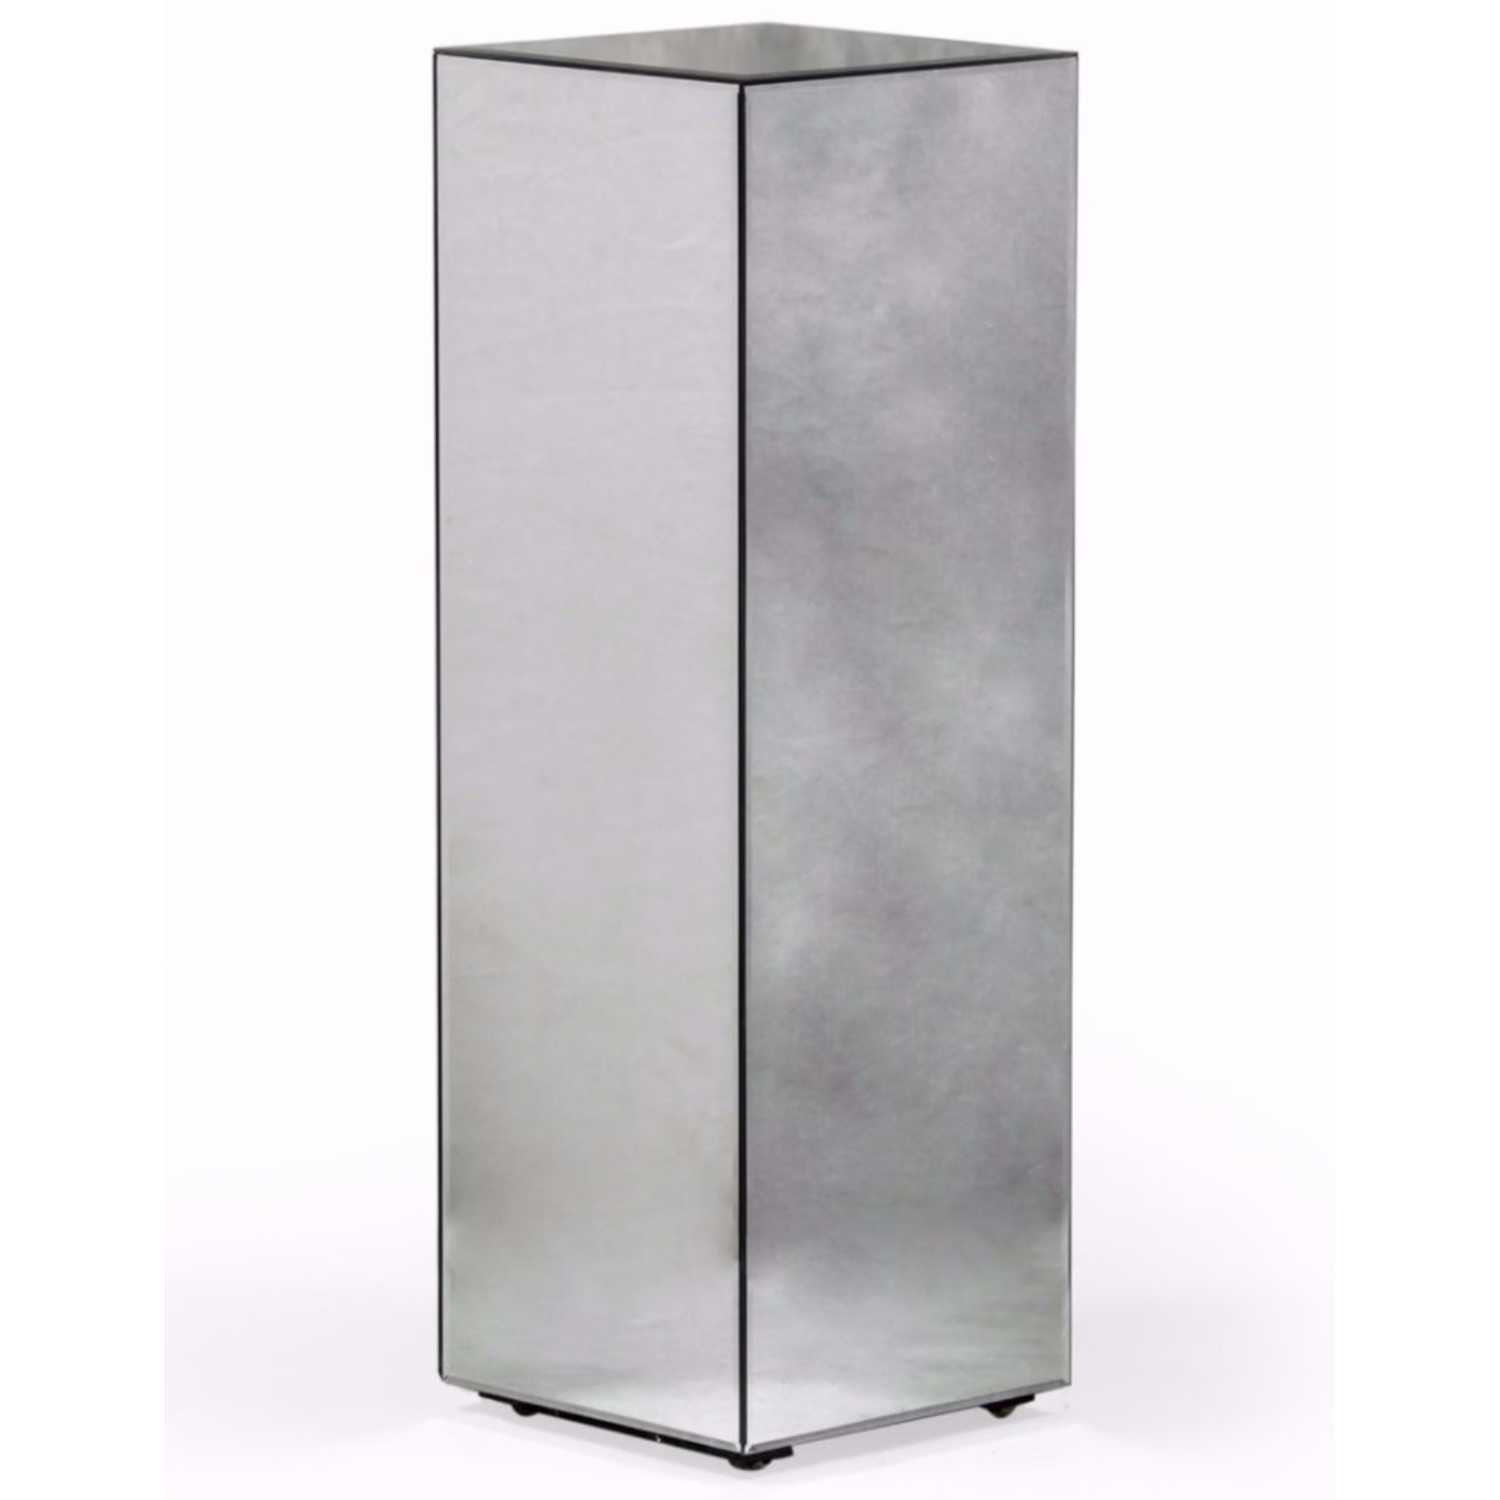 Tall Square Mirrored Glass Pedestal Column Pillar Display Stand 90 x 30cm Square